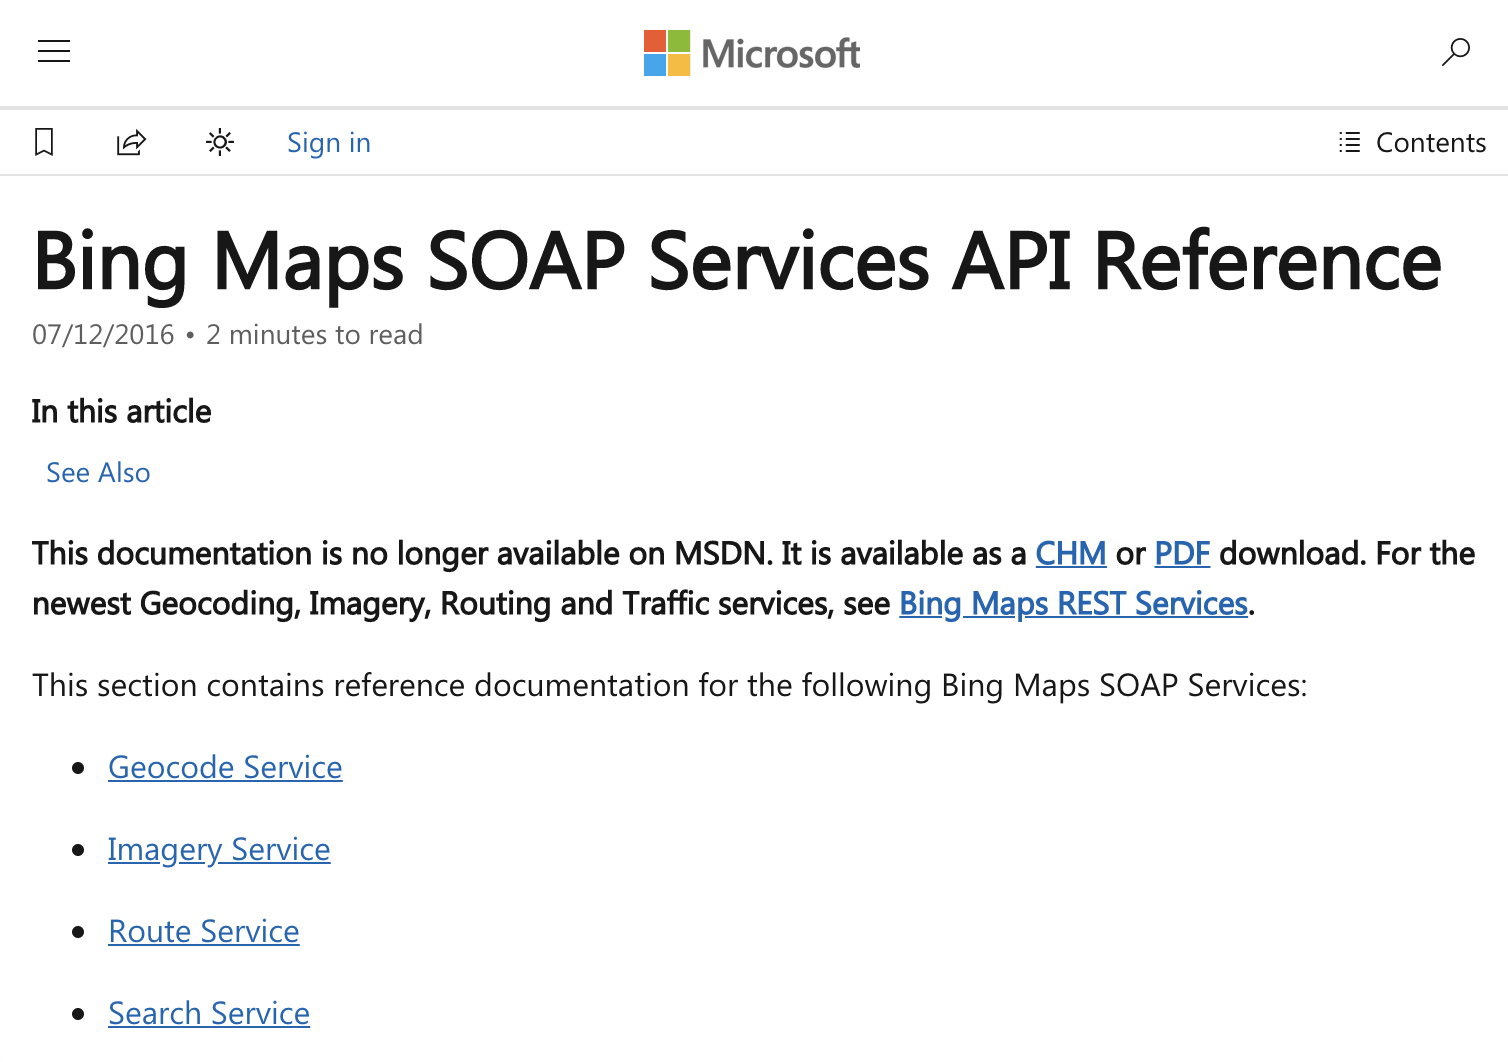 Bing Maps SOAP Web Services API Reference (2016)